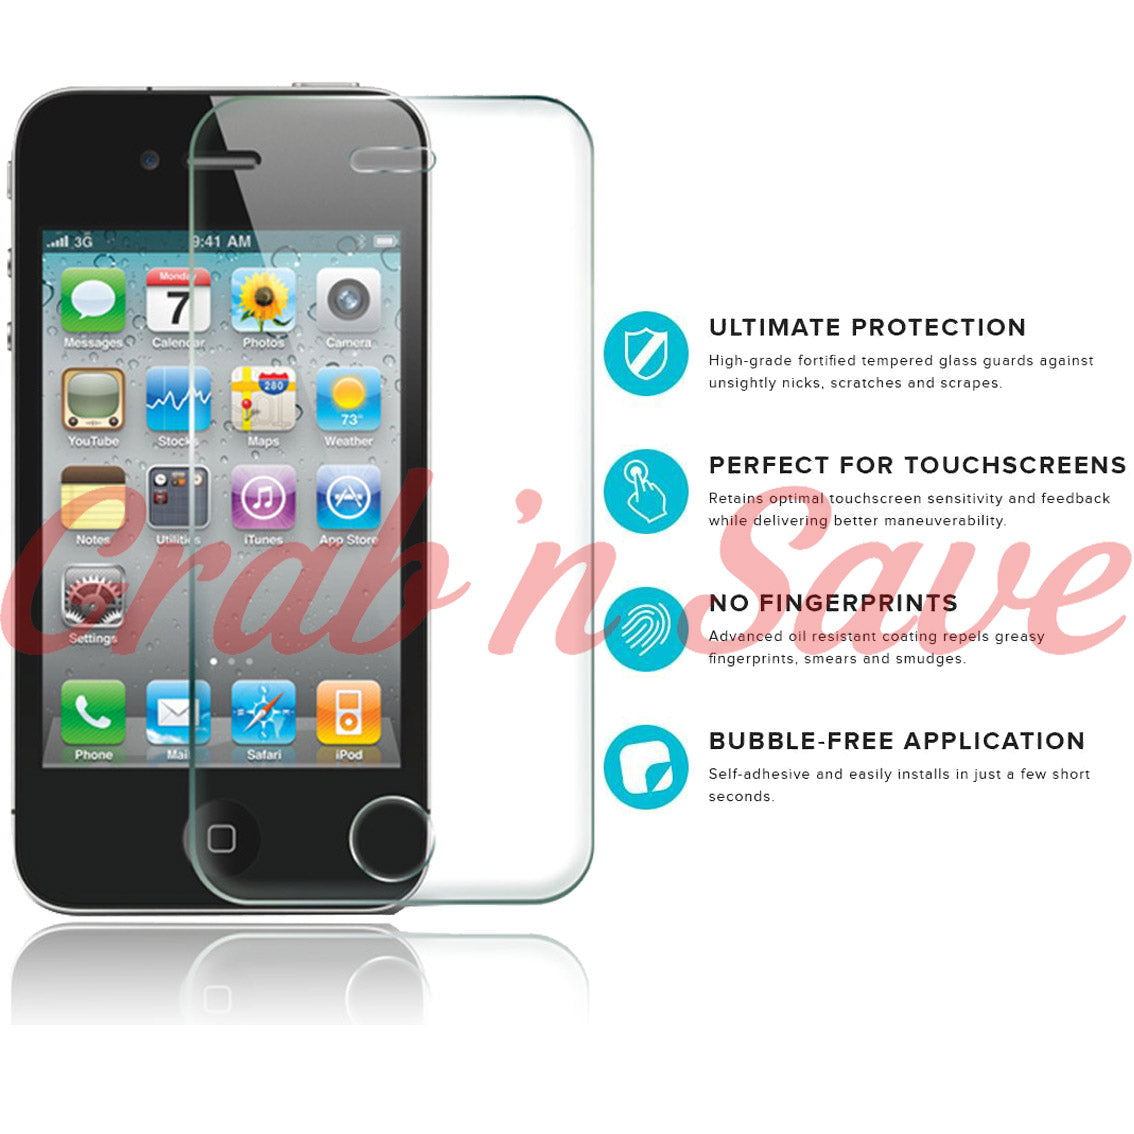 iPhone 4 Screen Protector, Glass Screen Protector, Tempered Glass Screen Protector